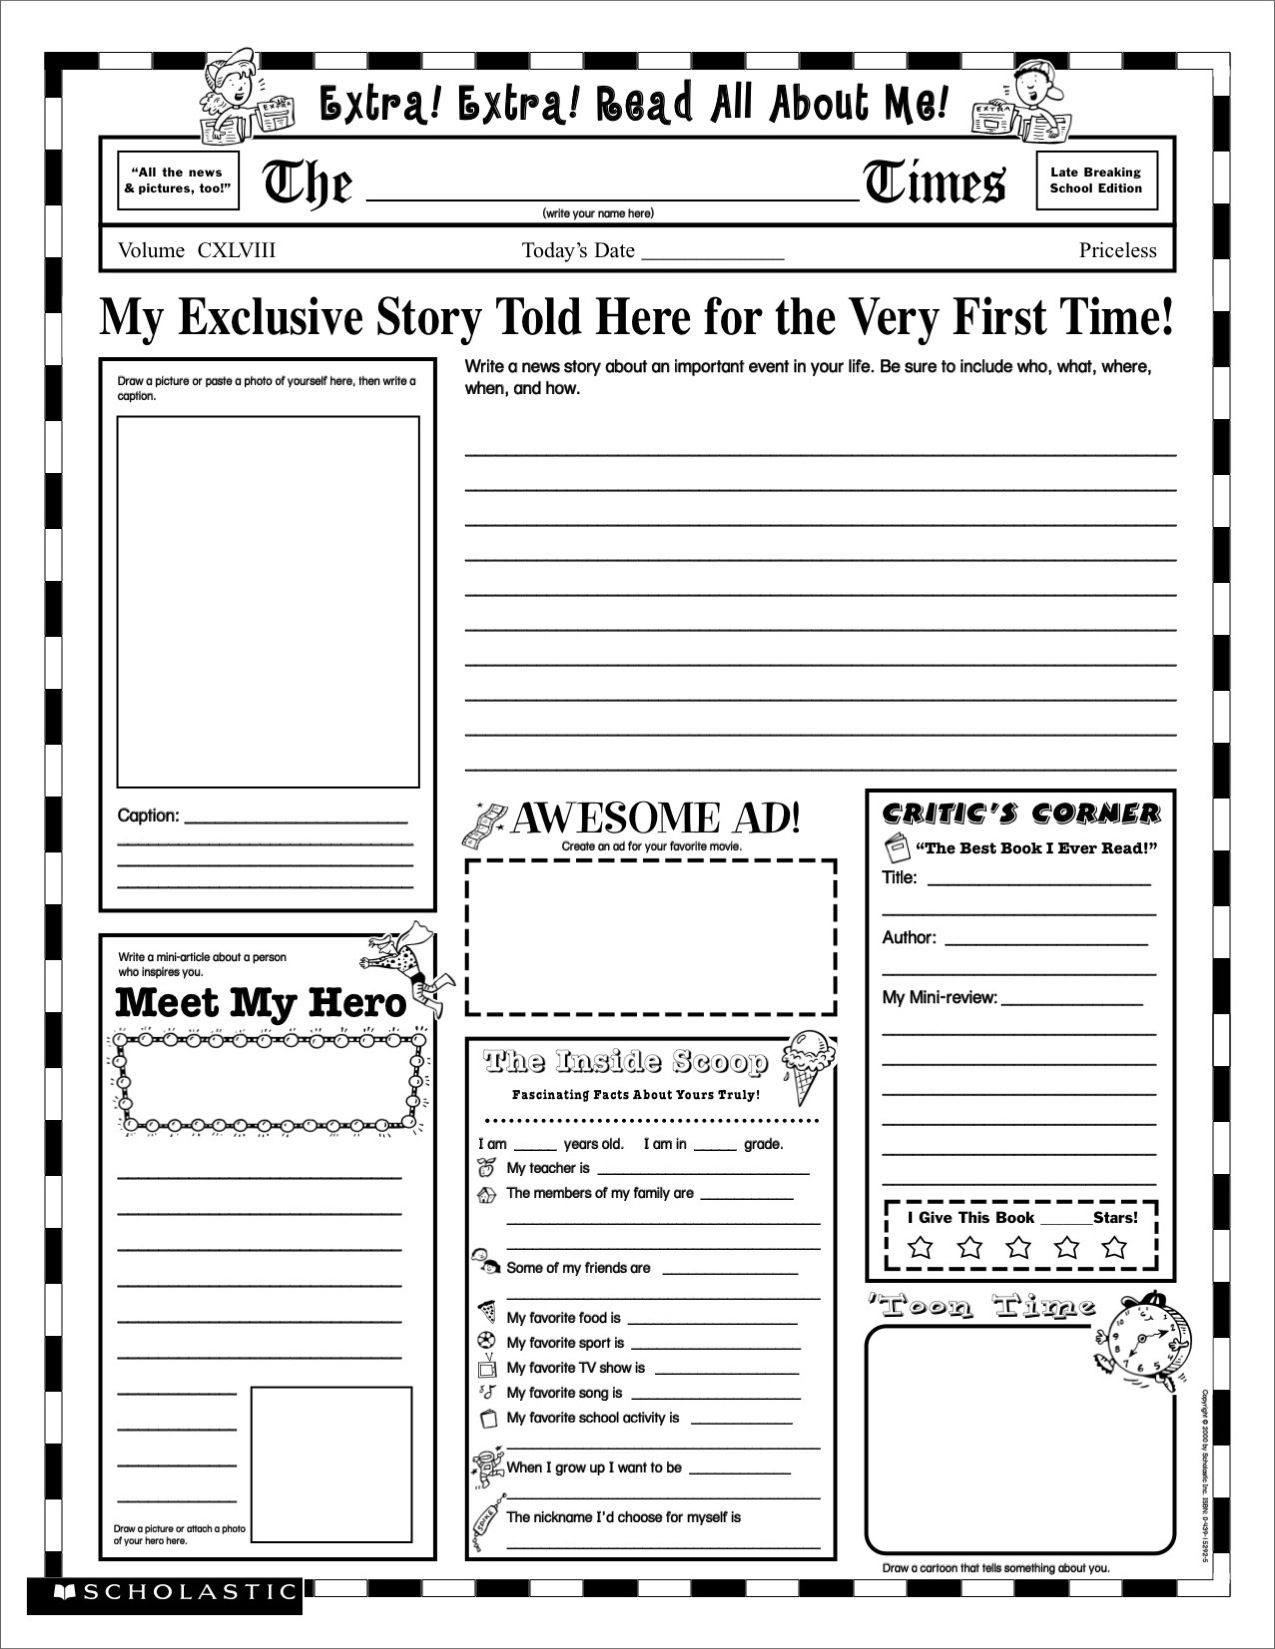 template for research report 4th grade - Google Search   Learning poster [ 1649 x 1275 Pixel ]